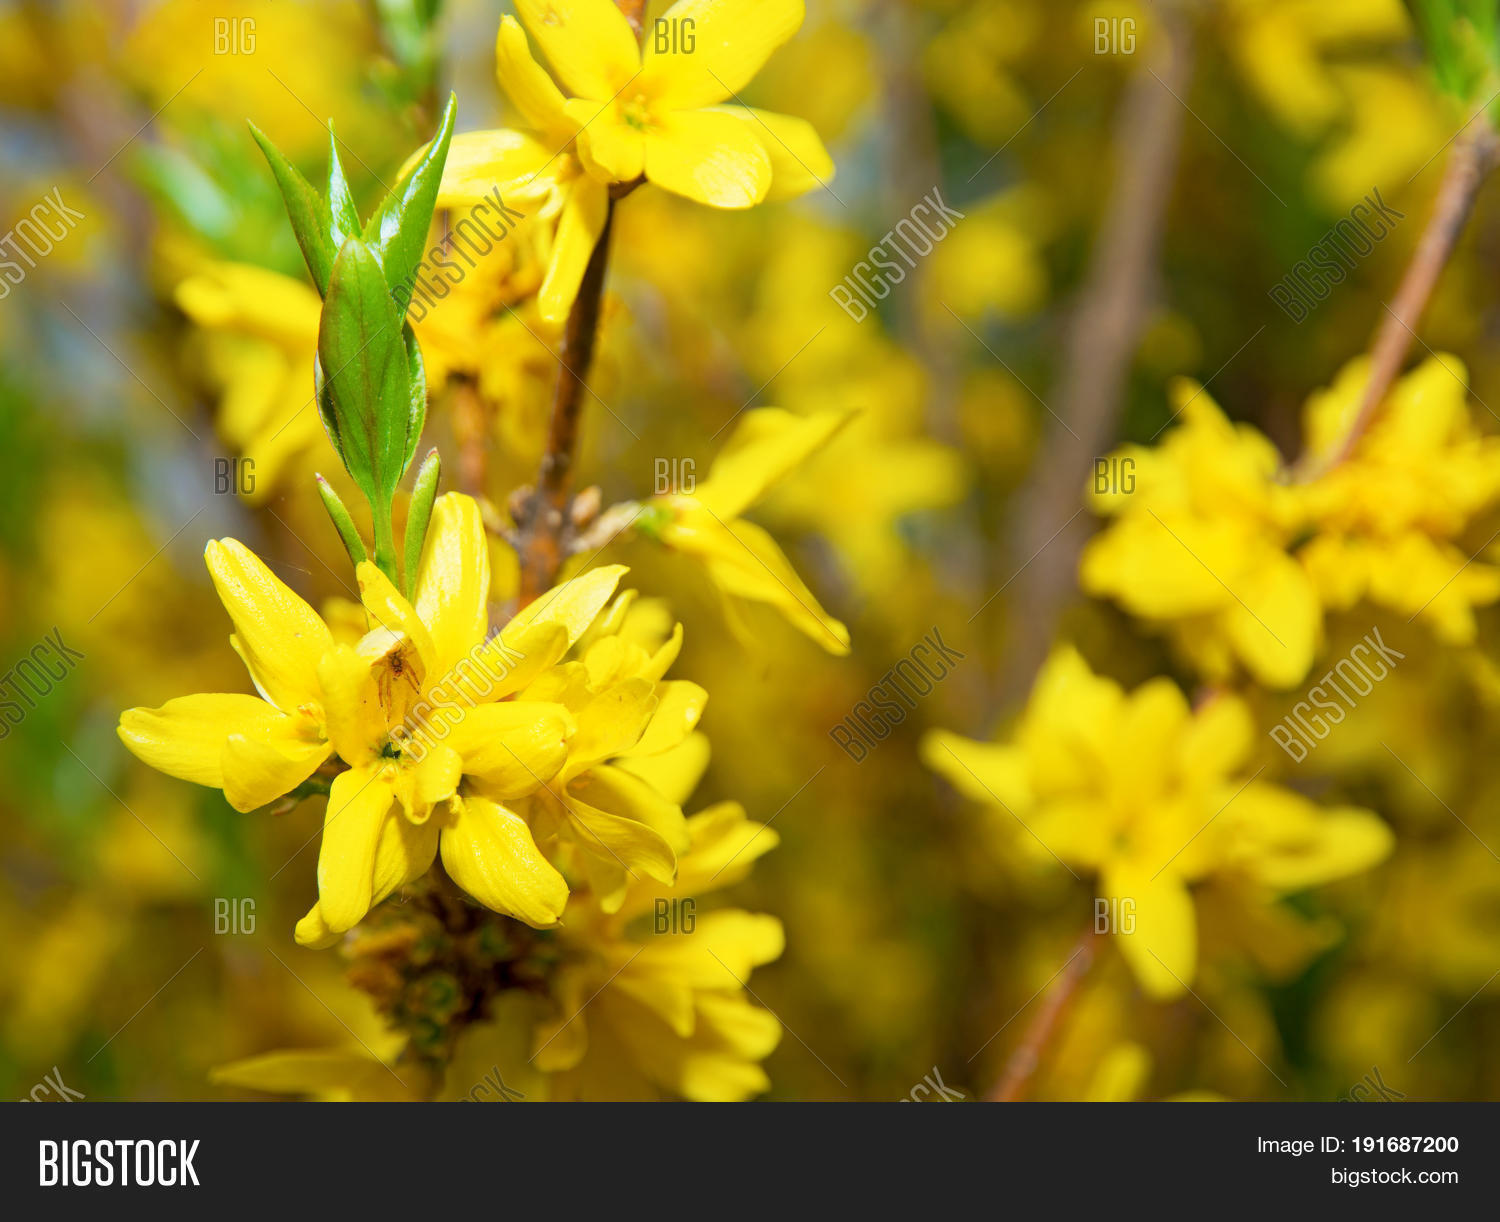 Bright yellow flowers image photo free trial bigstock bright yellow flowers on a bush many flower racemes and one sits a beautiful spider mightylinksfo